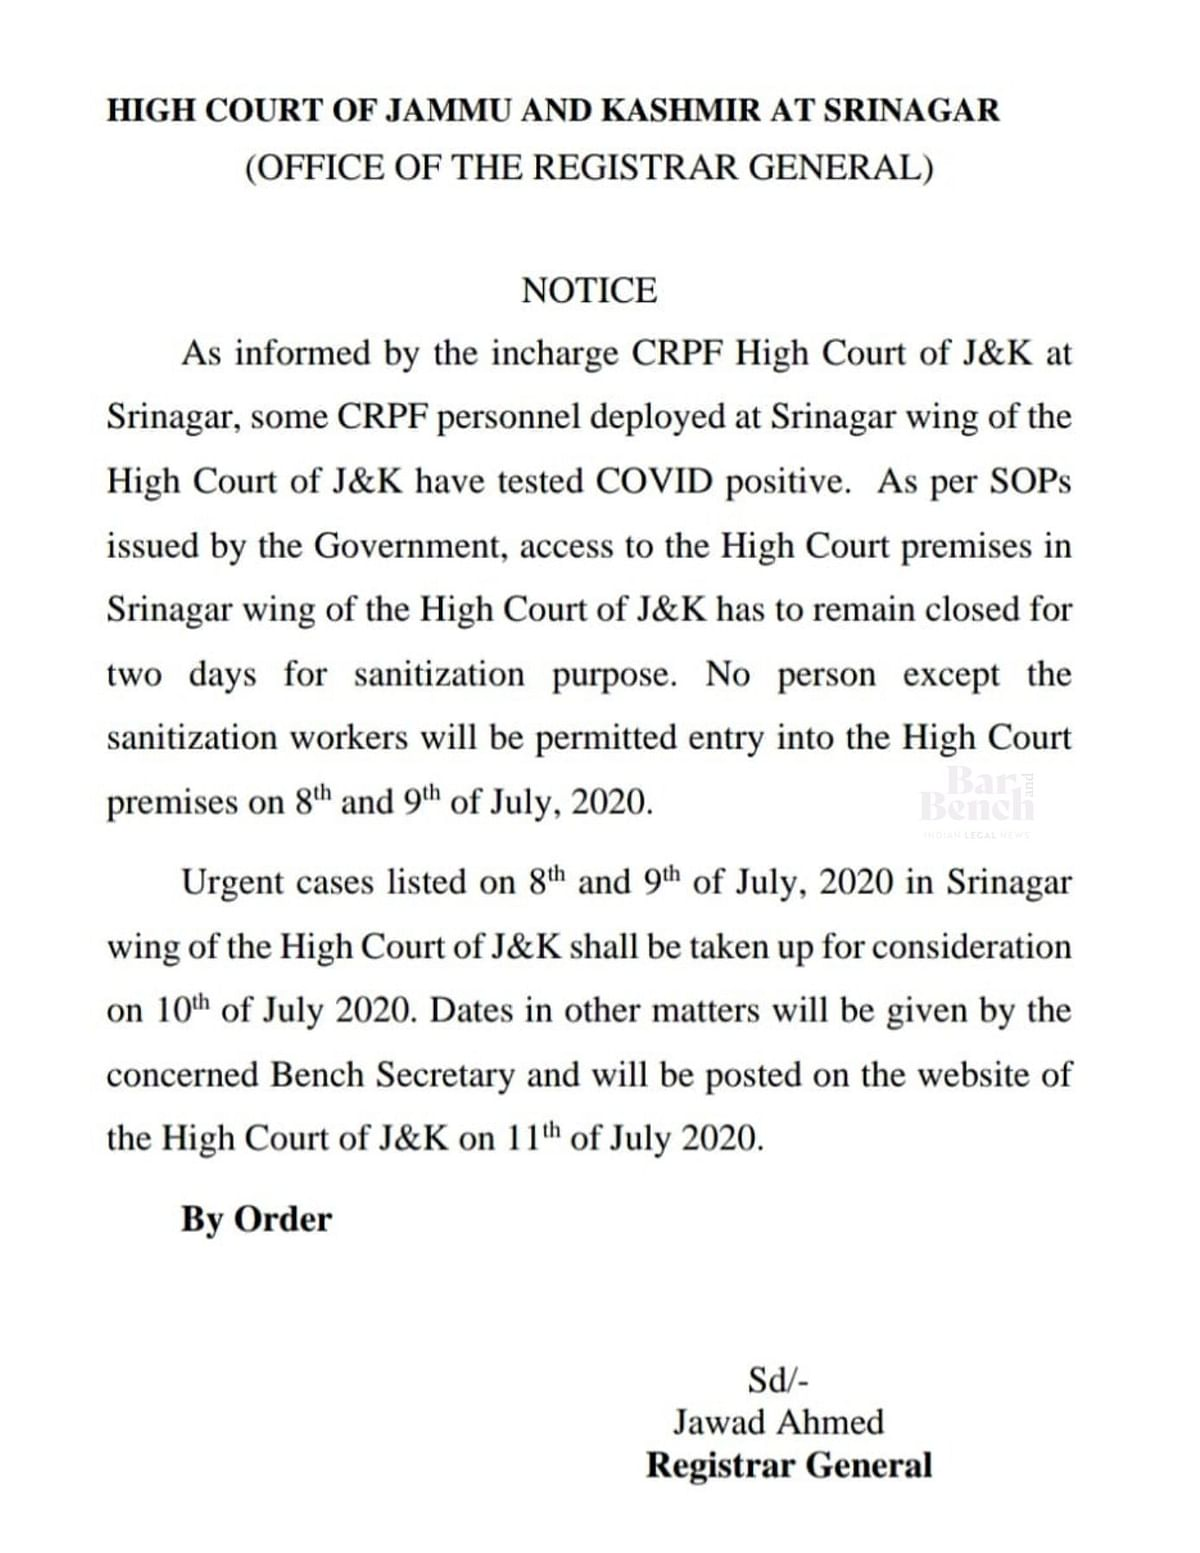 The notification issued by the High Court Registrar General